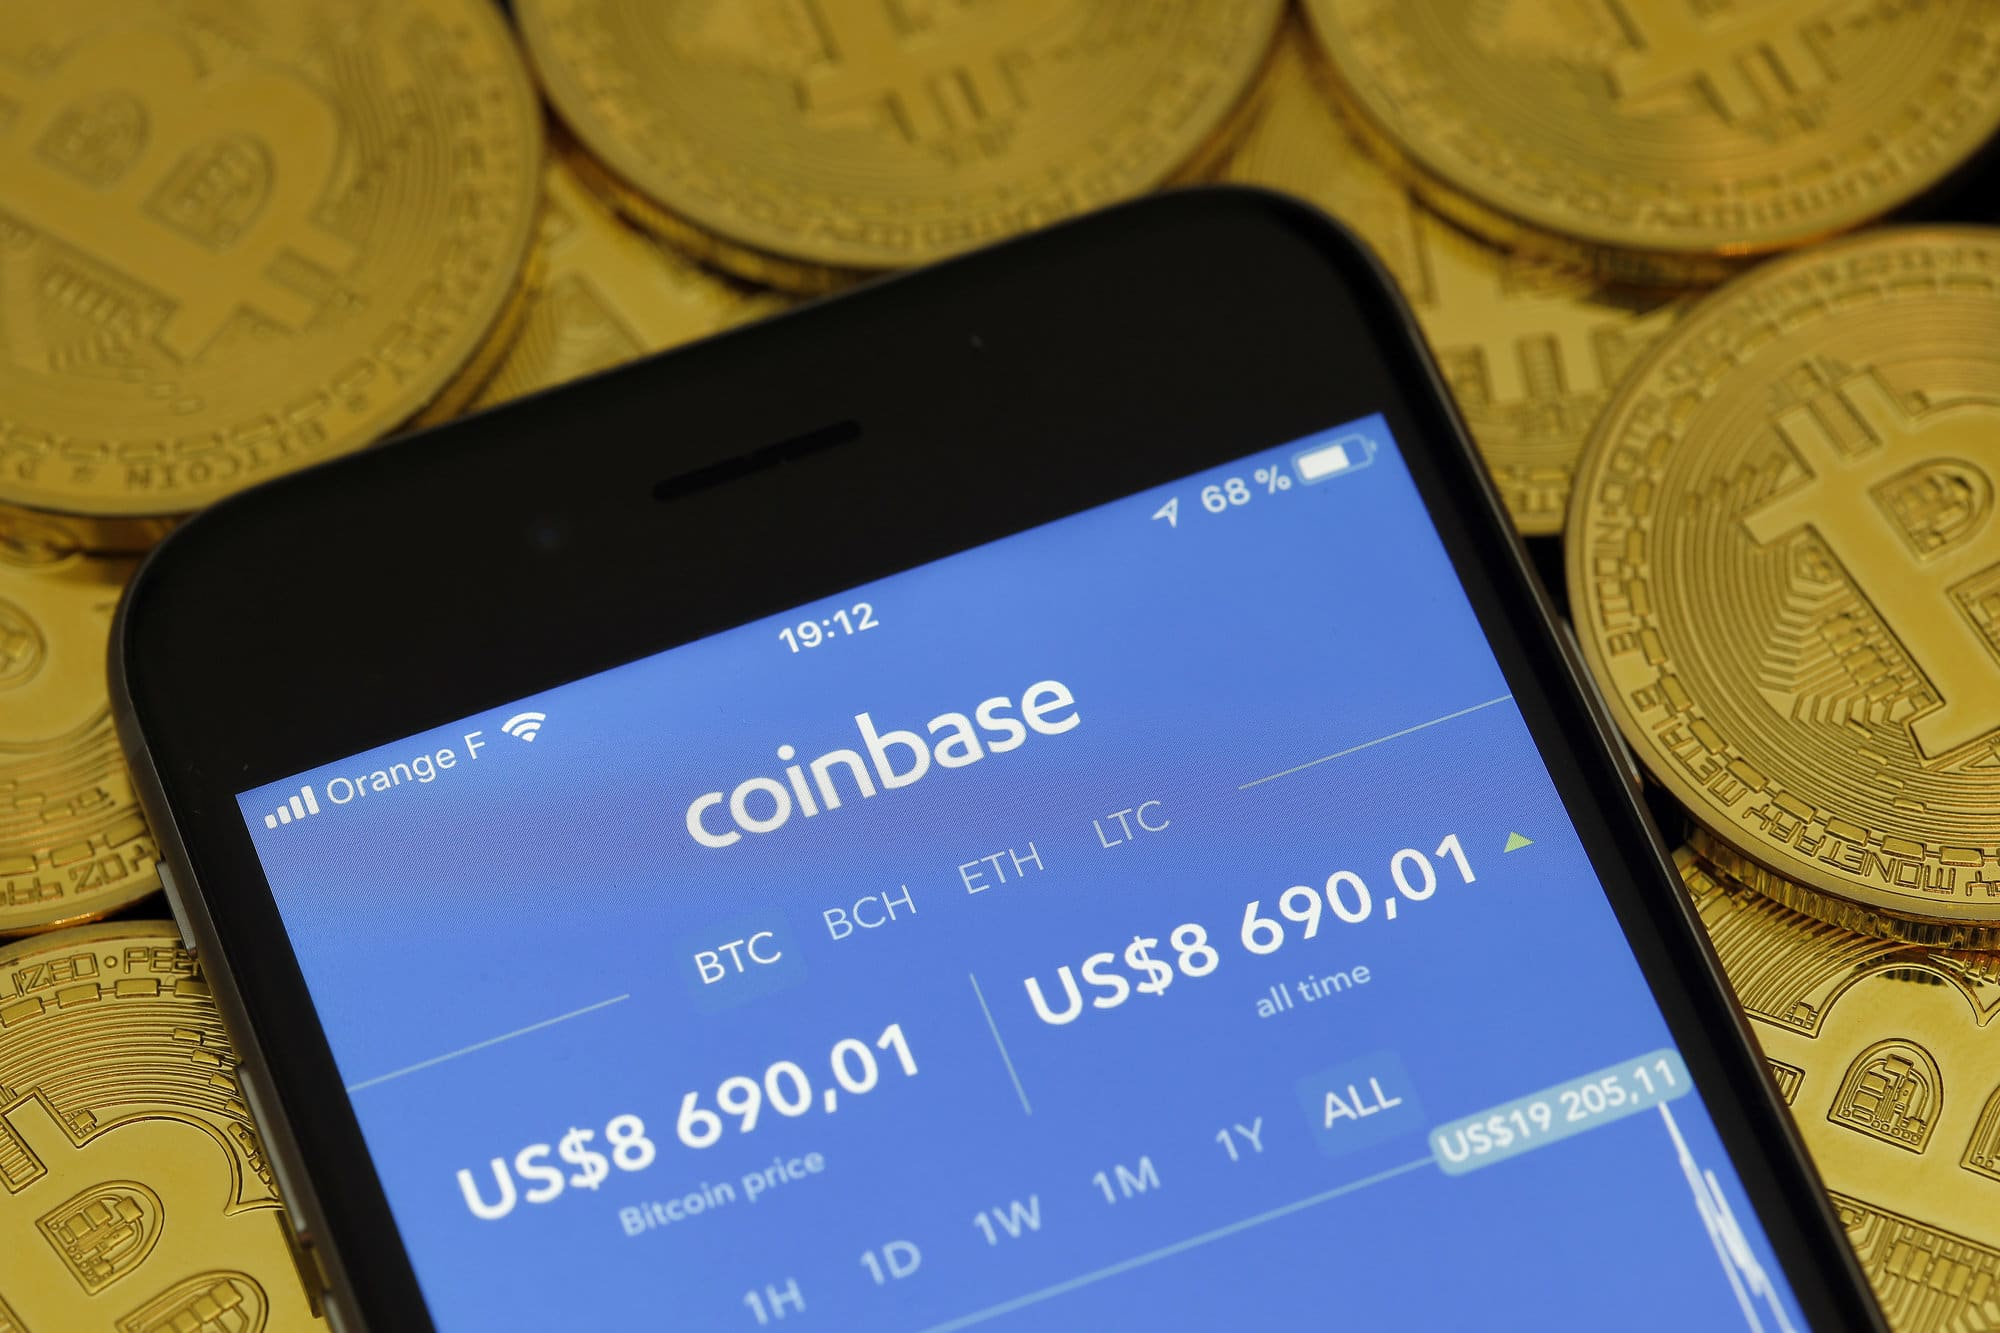 bitcoin-hits-new-all-time-high-above-63000-ahead-of-coinbase-debut